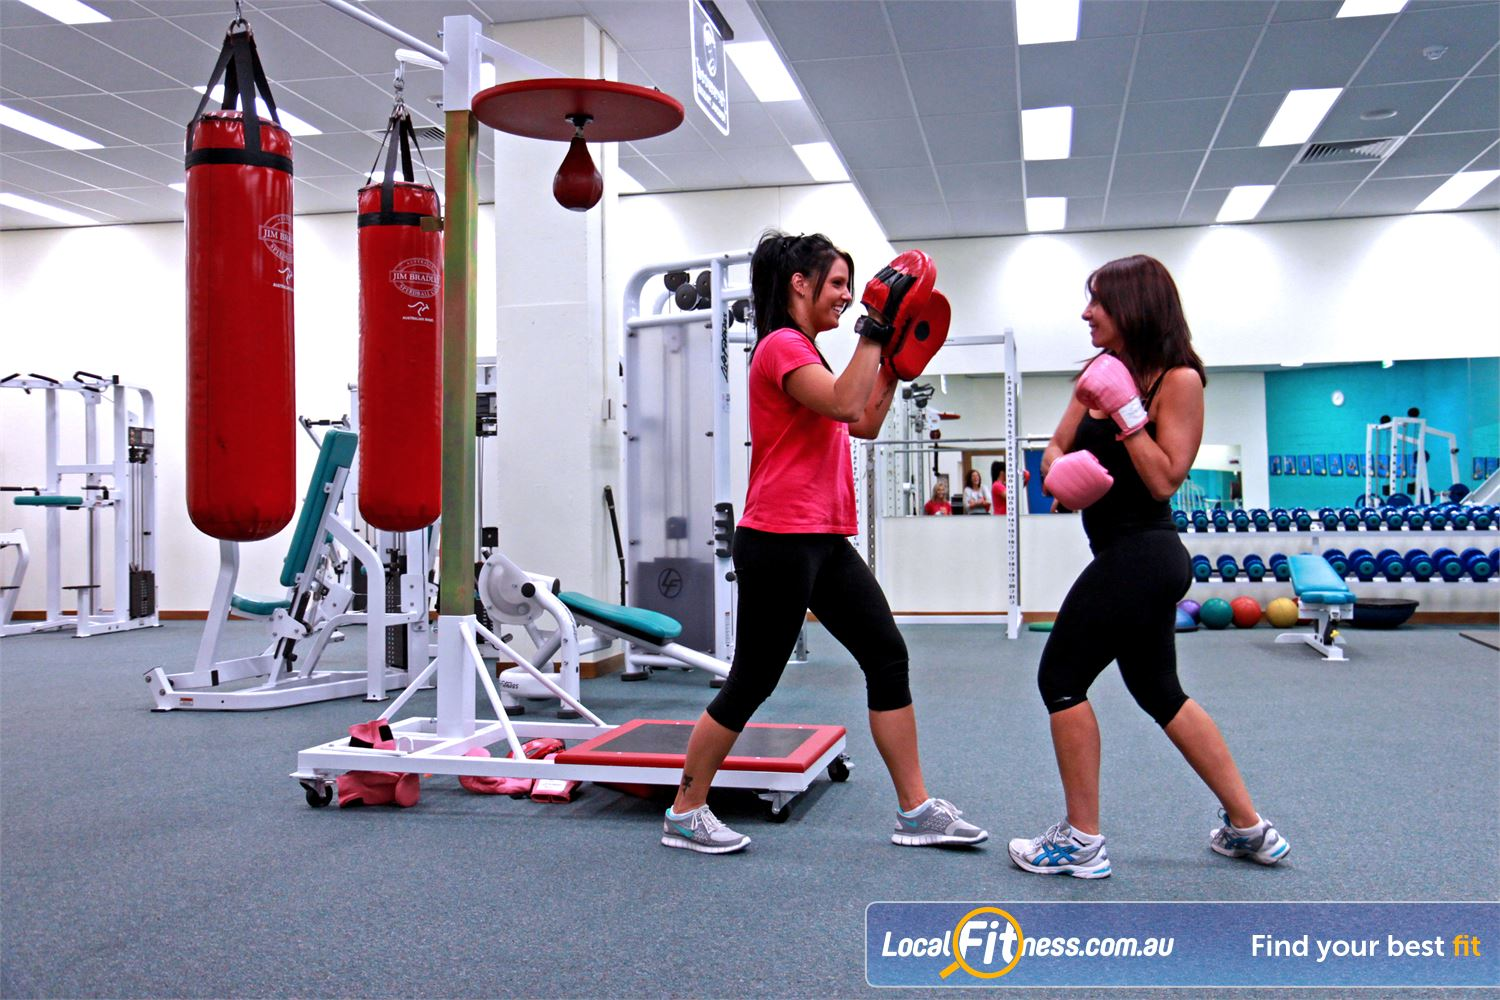 Fernwood Fitness Campbelltown Fernwood Campbelltown gym instructors can incorporate cardio boxing into your workouts.